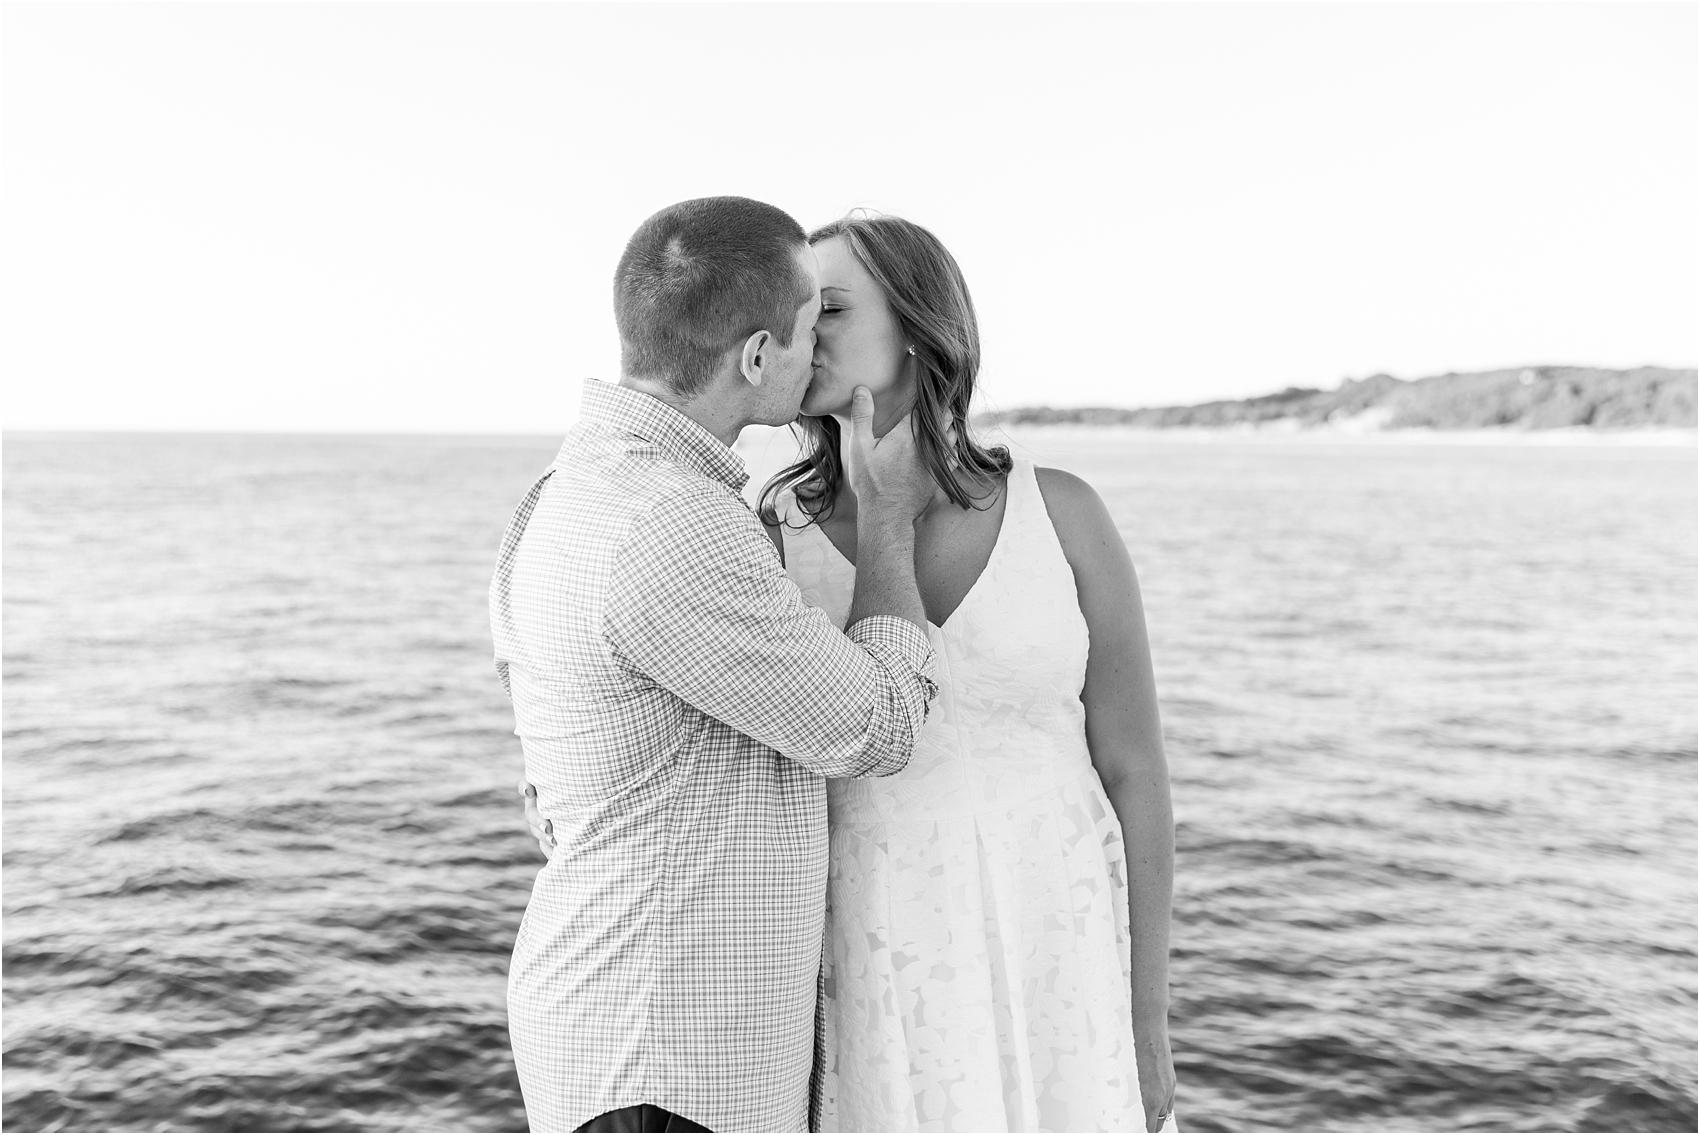 emotional-candid-romantic-engagement-photos-in-detroit-chicago-northern-michigan-by-courtney-carolyn-photography_0028.jpg